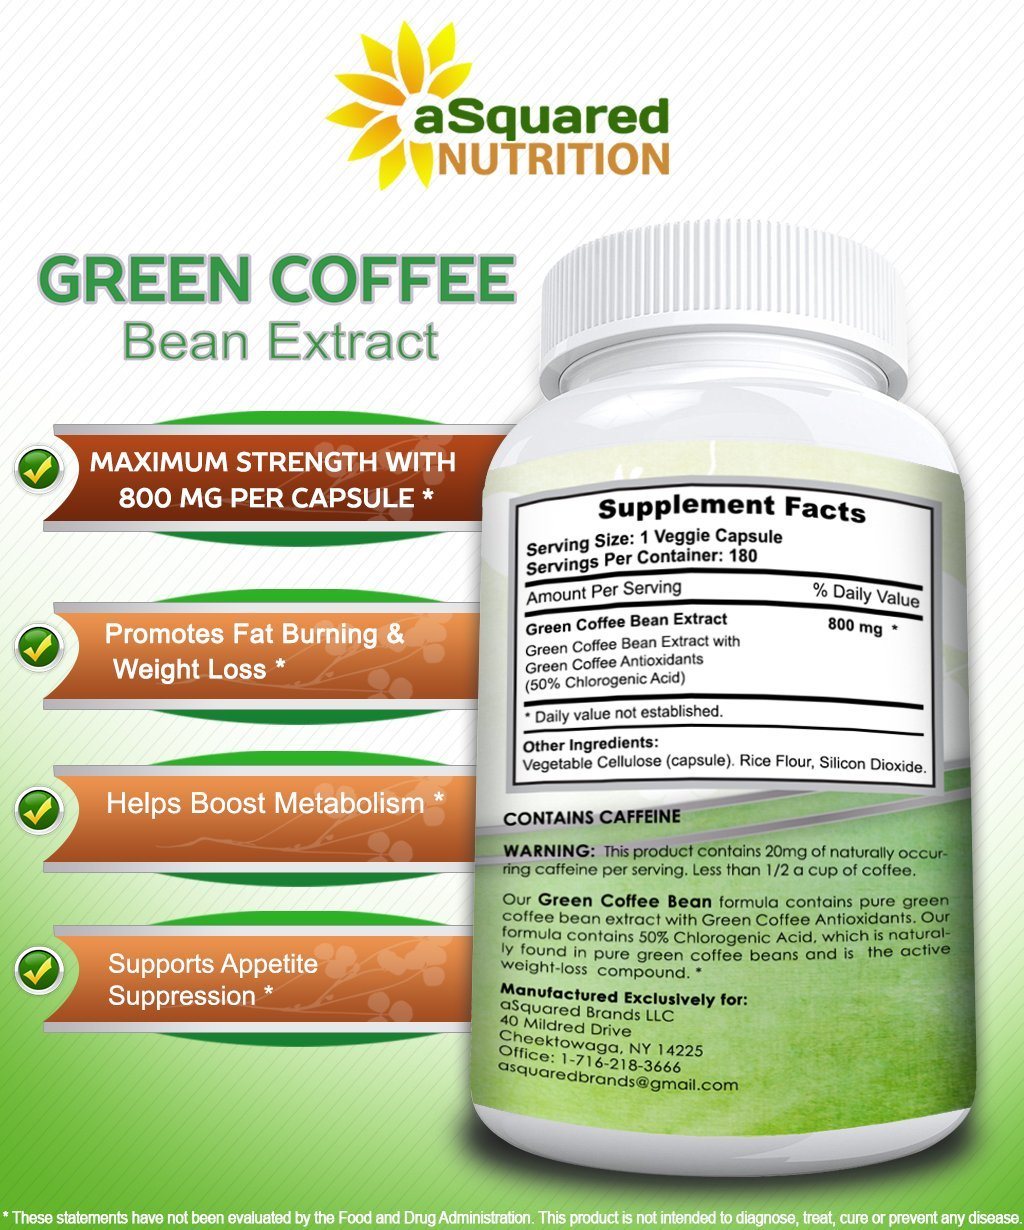 100% Pure Green Coffee Bean Extract - 180 Capsules - Max Strength Natural GCA Antioxidant Cleanse for Weight Loss, 800mg w/ 50% Chlorogenic Acid per Pill, 1600mg Daily Supplement, Healthy Fat Burner by aSquared Nutrition (Image #7)